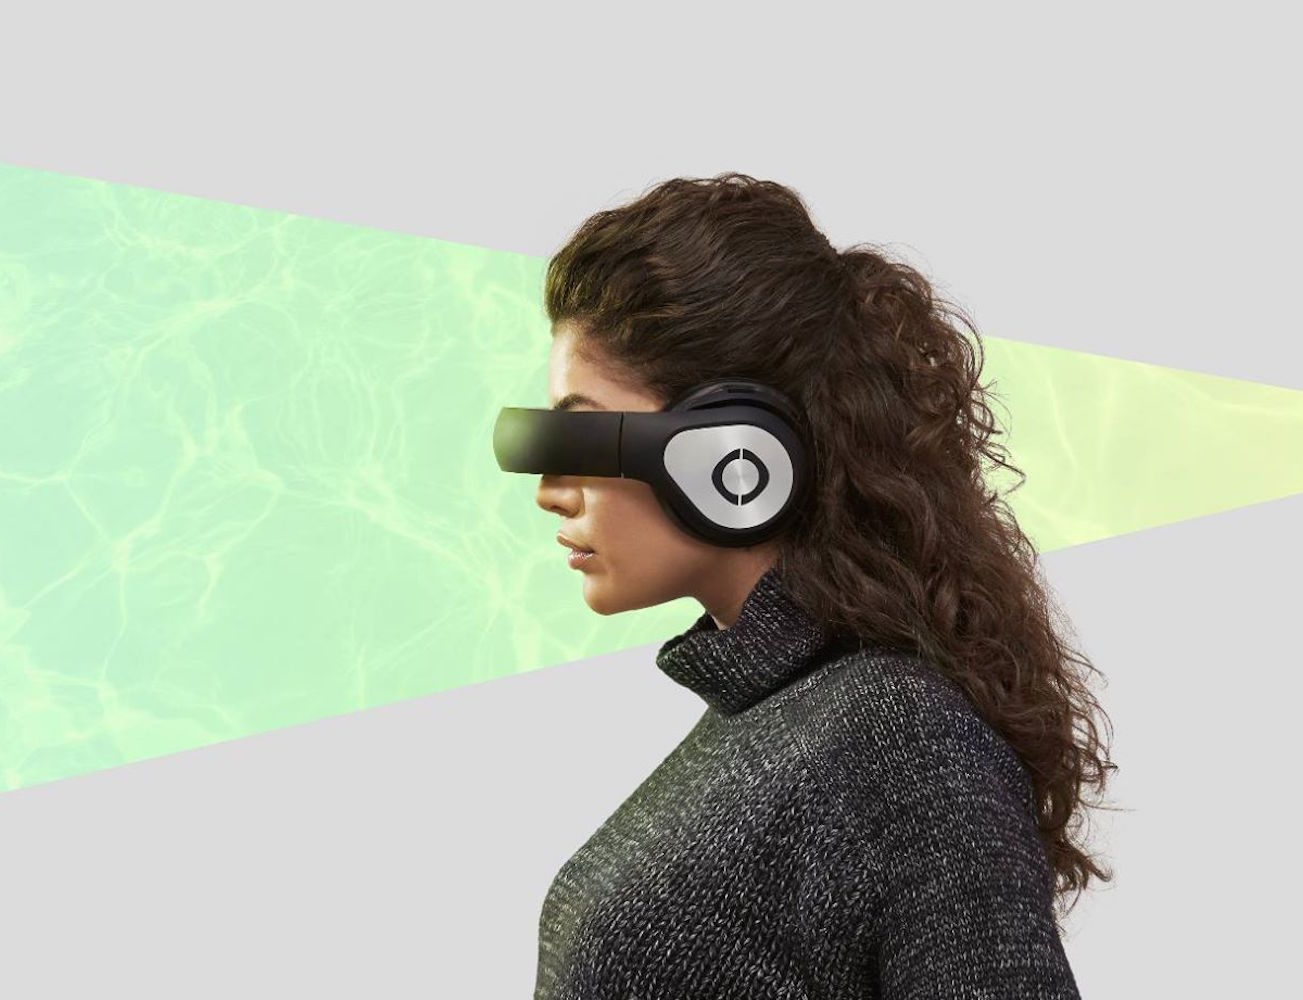 Avegant Glyph – Media Player That Doubles as a Headset